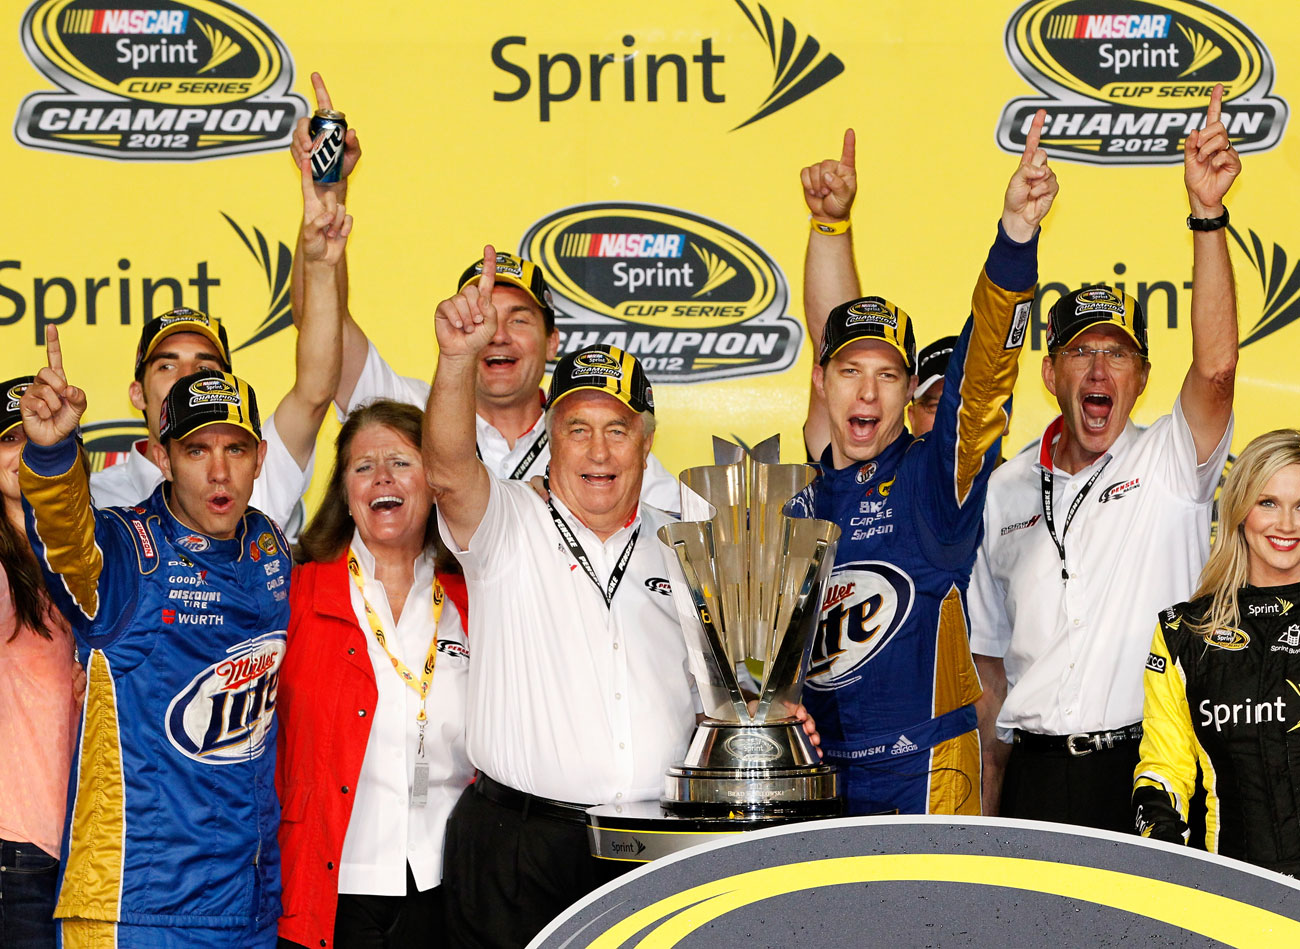 BRAD CELEBRATES THE 2012 SPRINT CUP SERIES CHAMPIONSHIP WITH HIS TEAM.